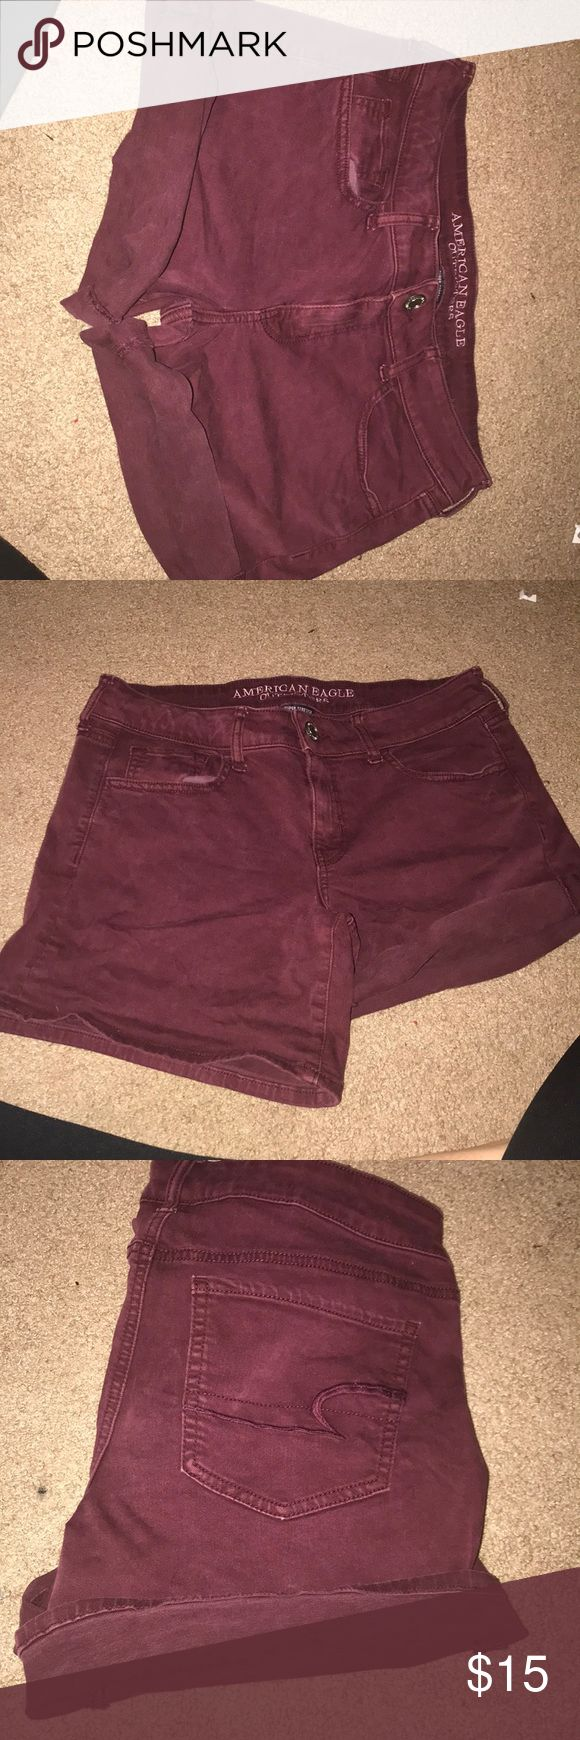 American eagle maroon shorts! Super cute shorts, barley worn! Can be worn long or short by rolling the bottoms. Super comfortable material, very stretchy! Could fit a 12 or 10! American Eagle Outfitters Shorts